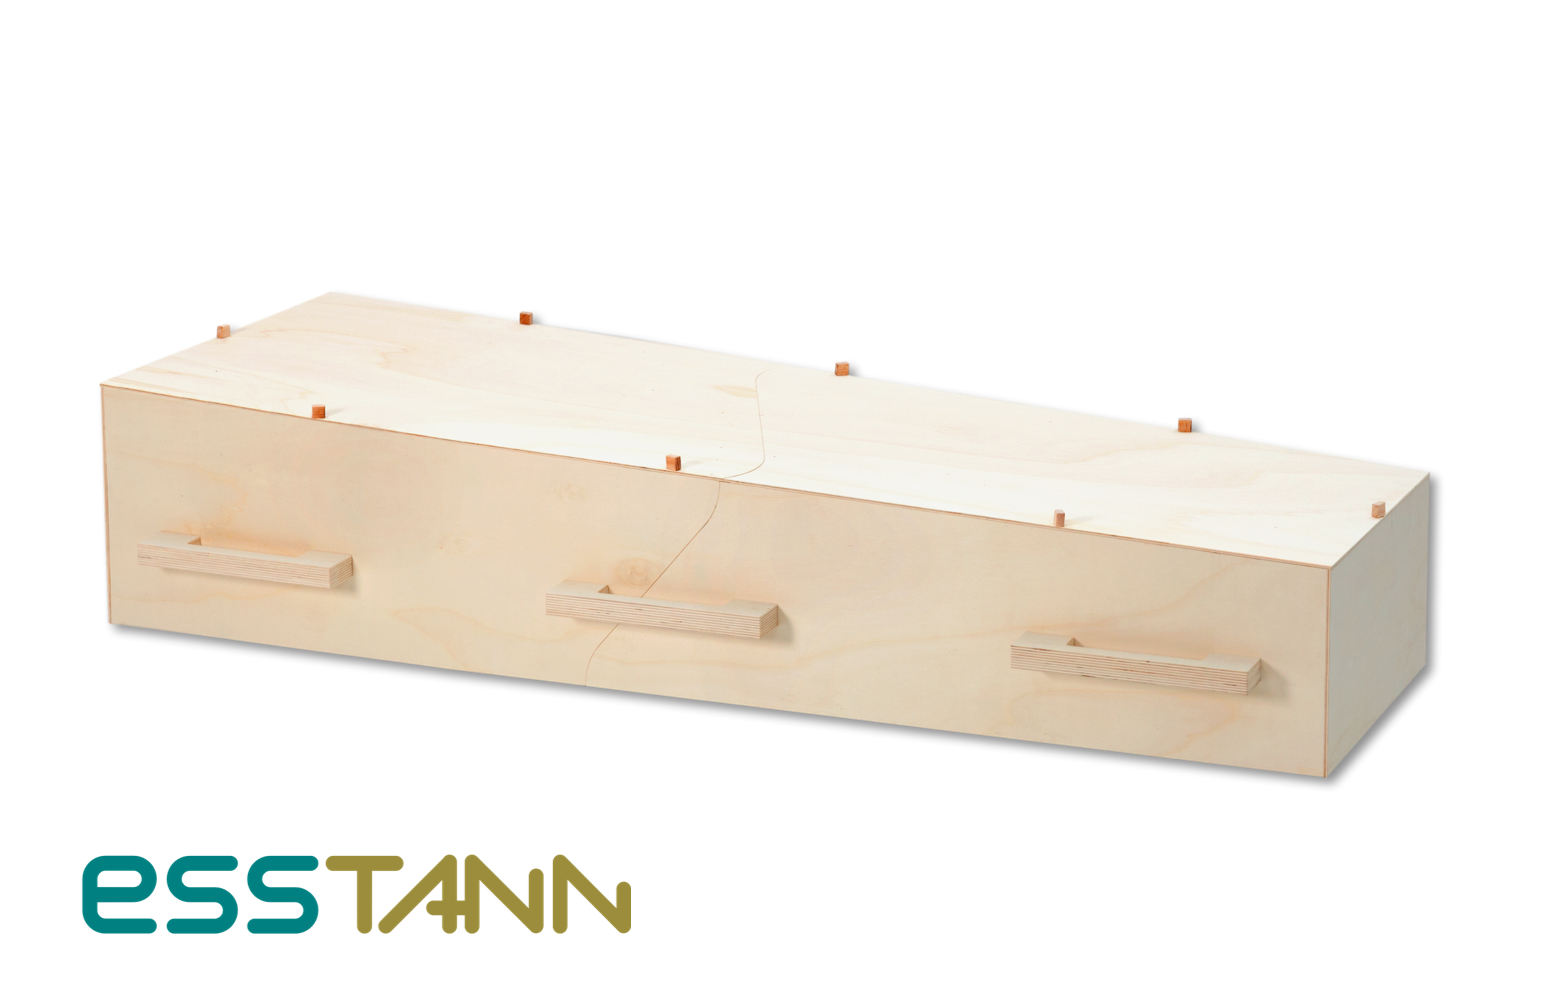 ESSTANN dutch design eco coffin